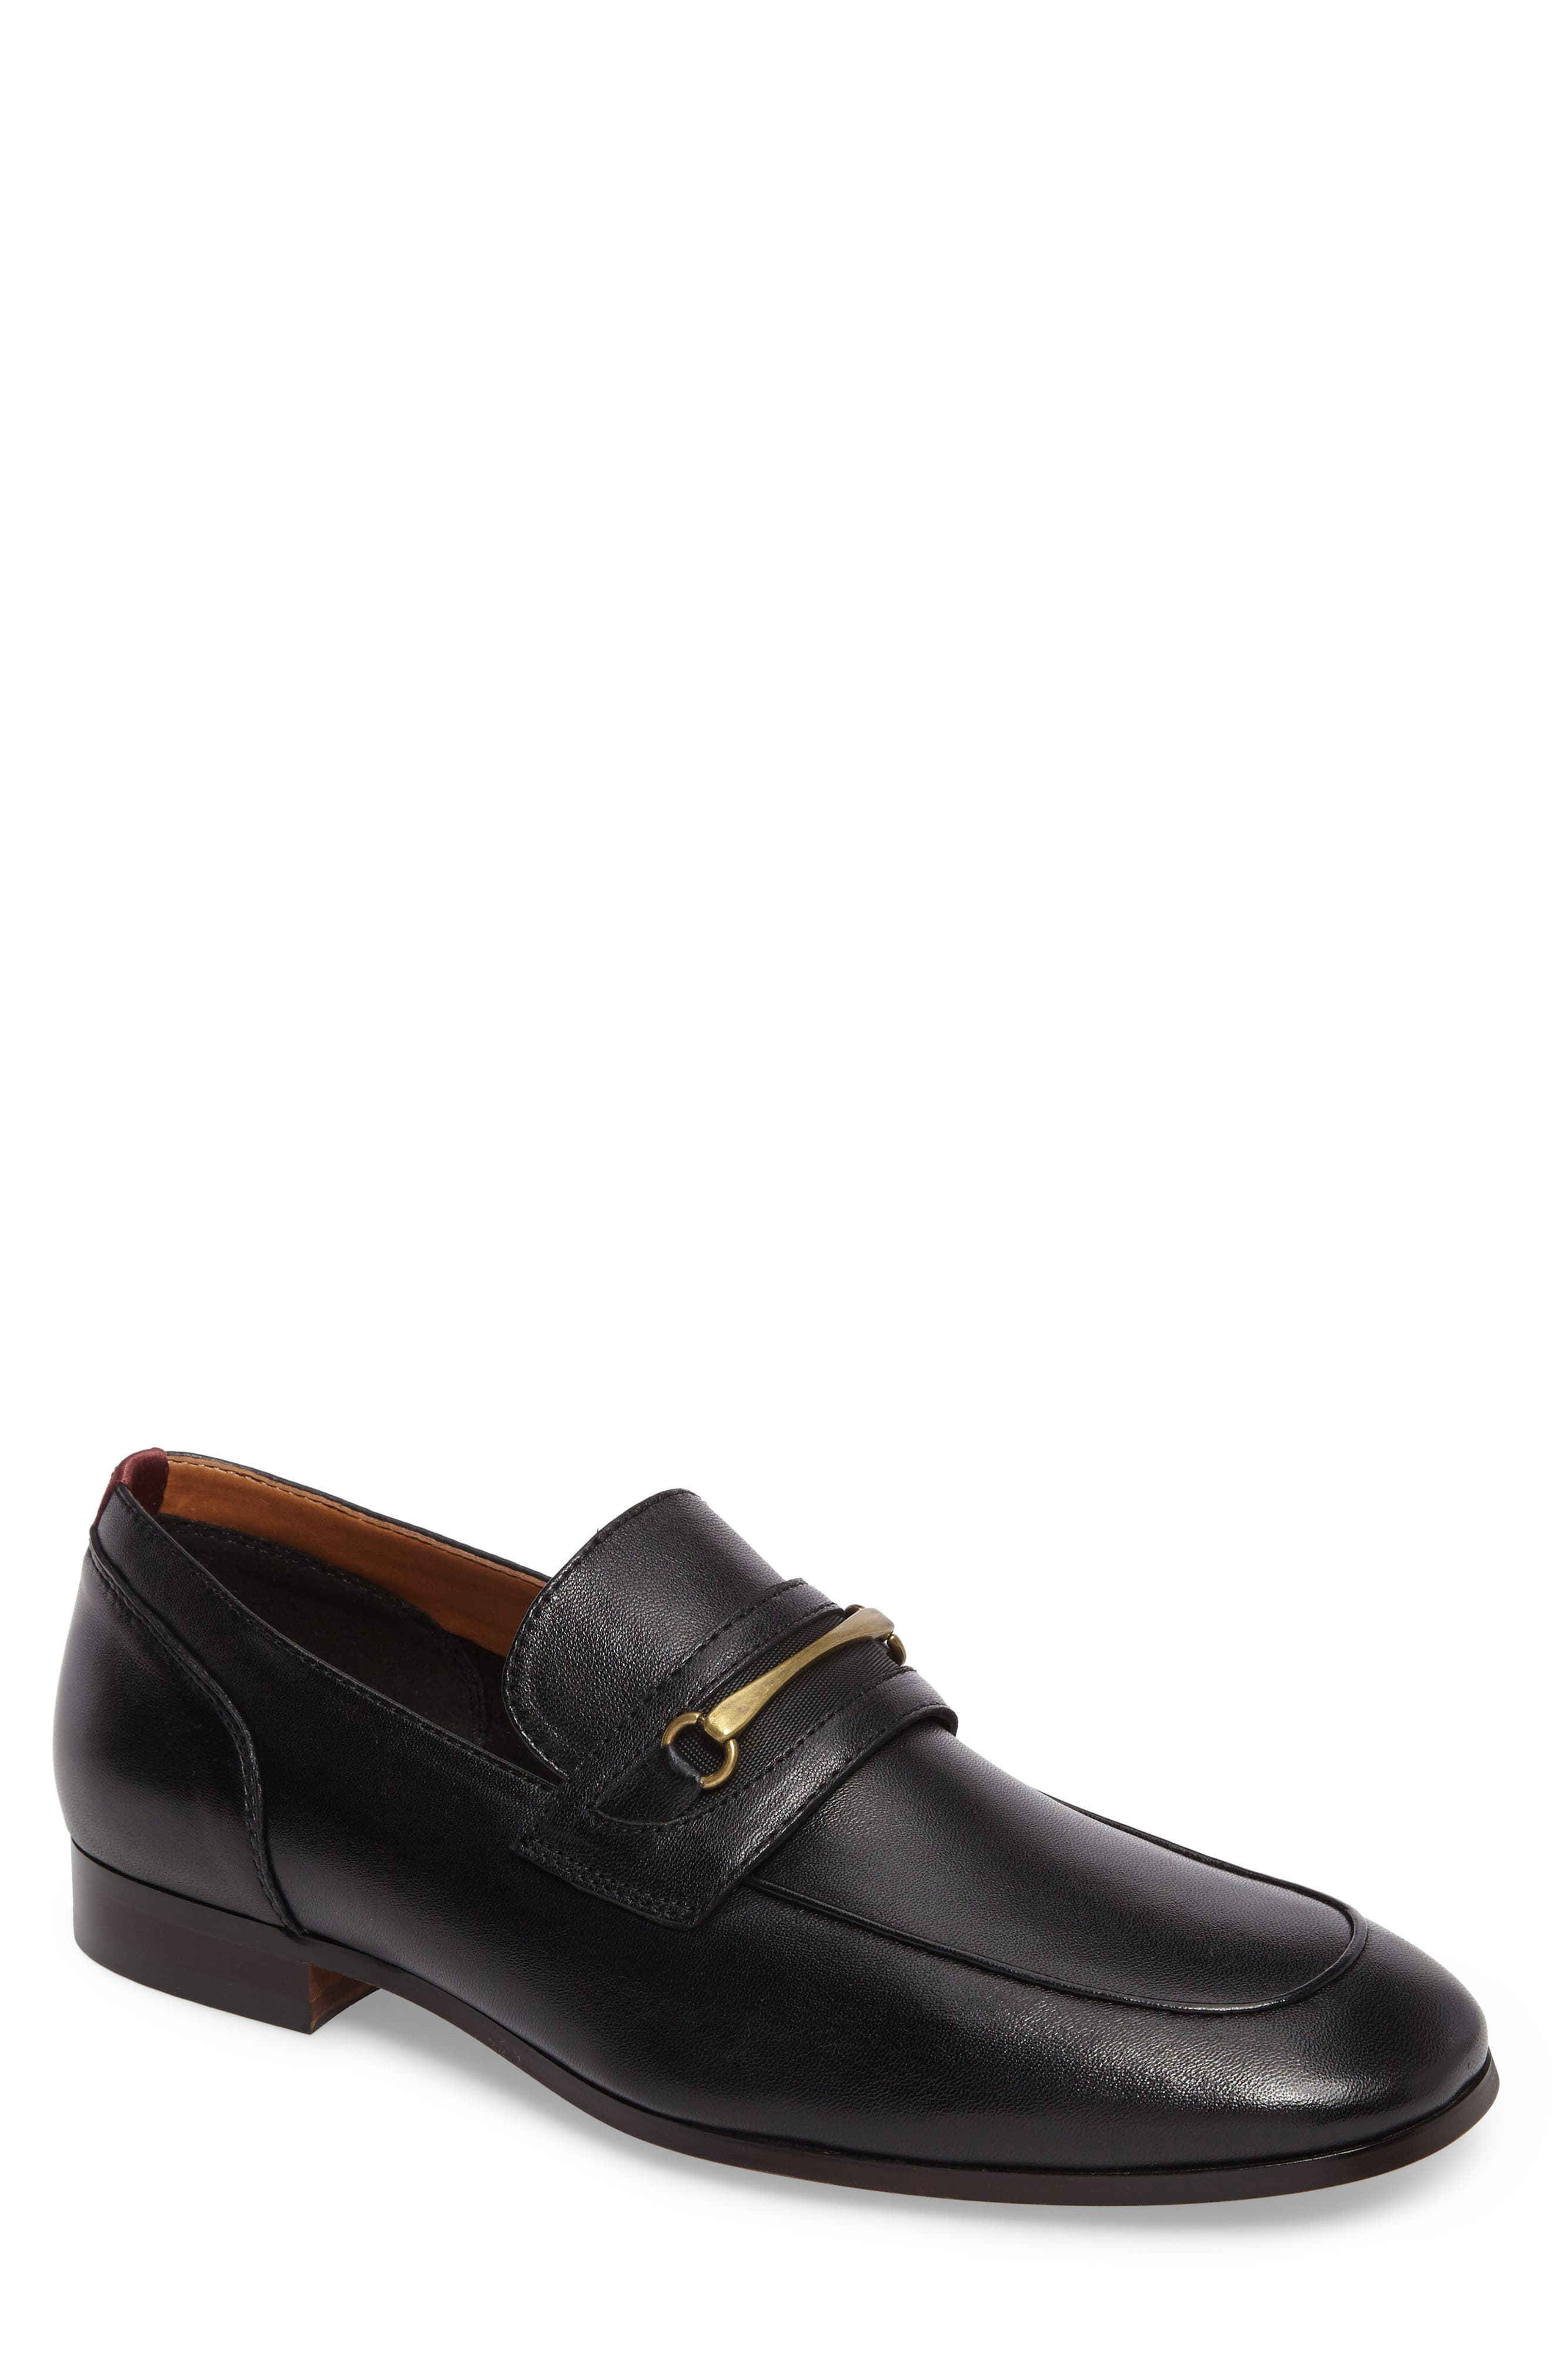 Main Image - ALDO Murat Bit Loafer (Men)